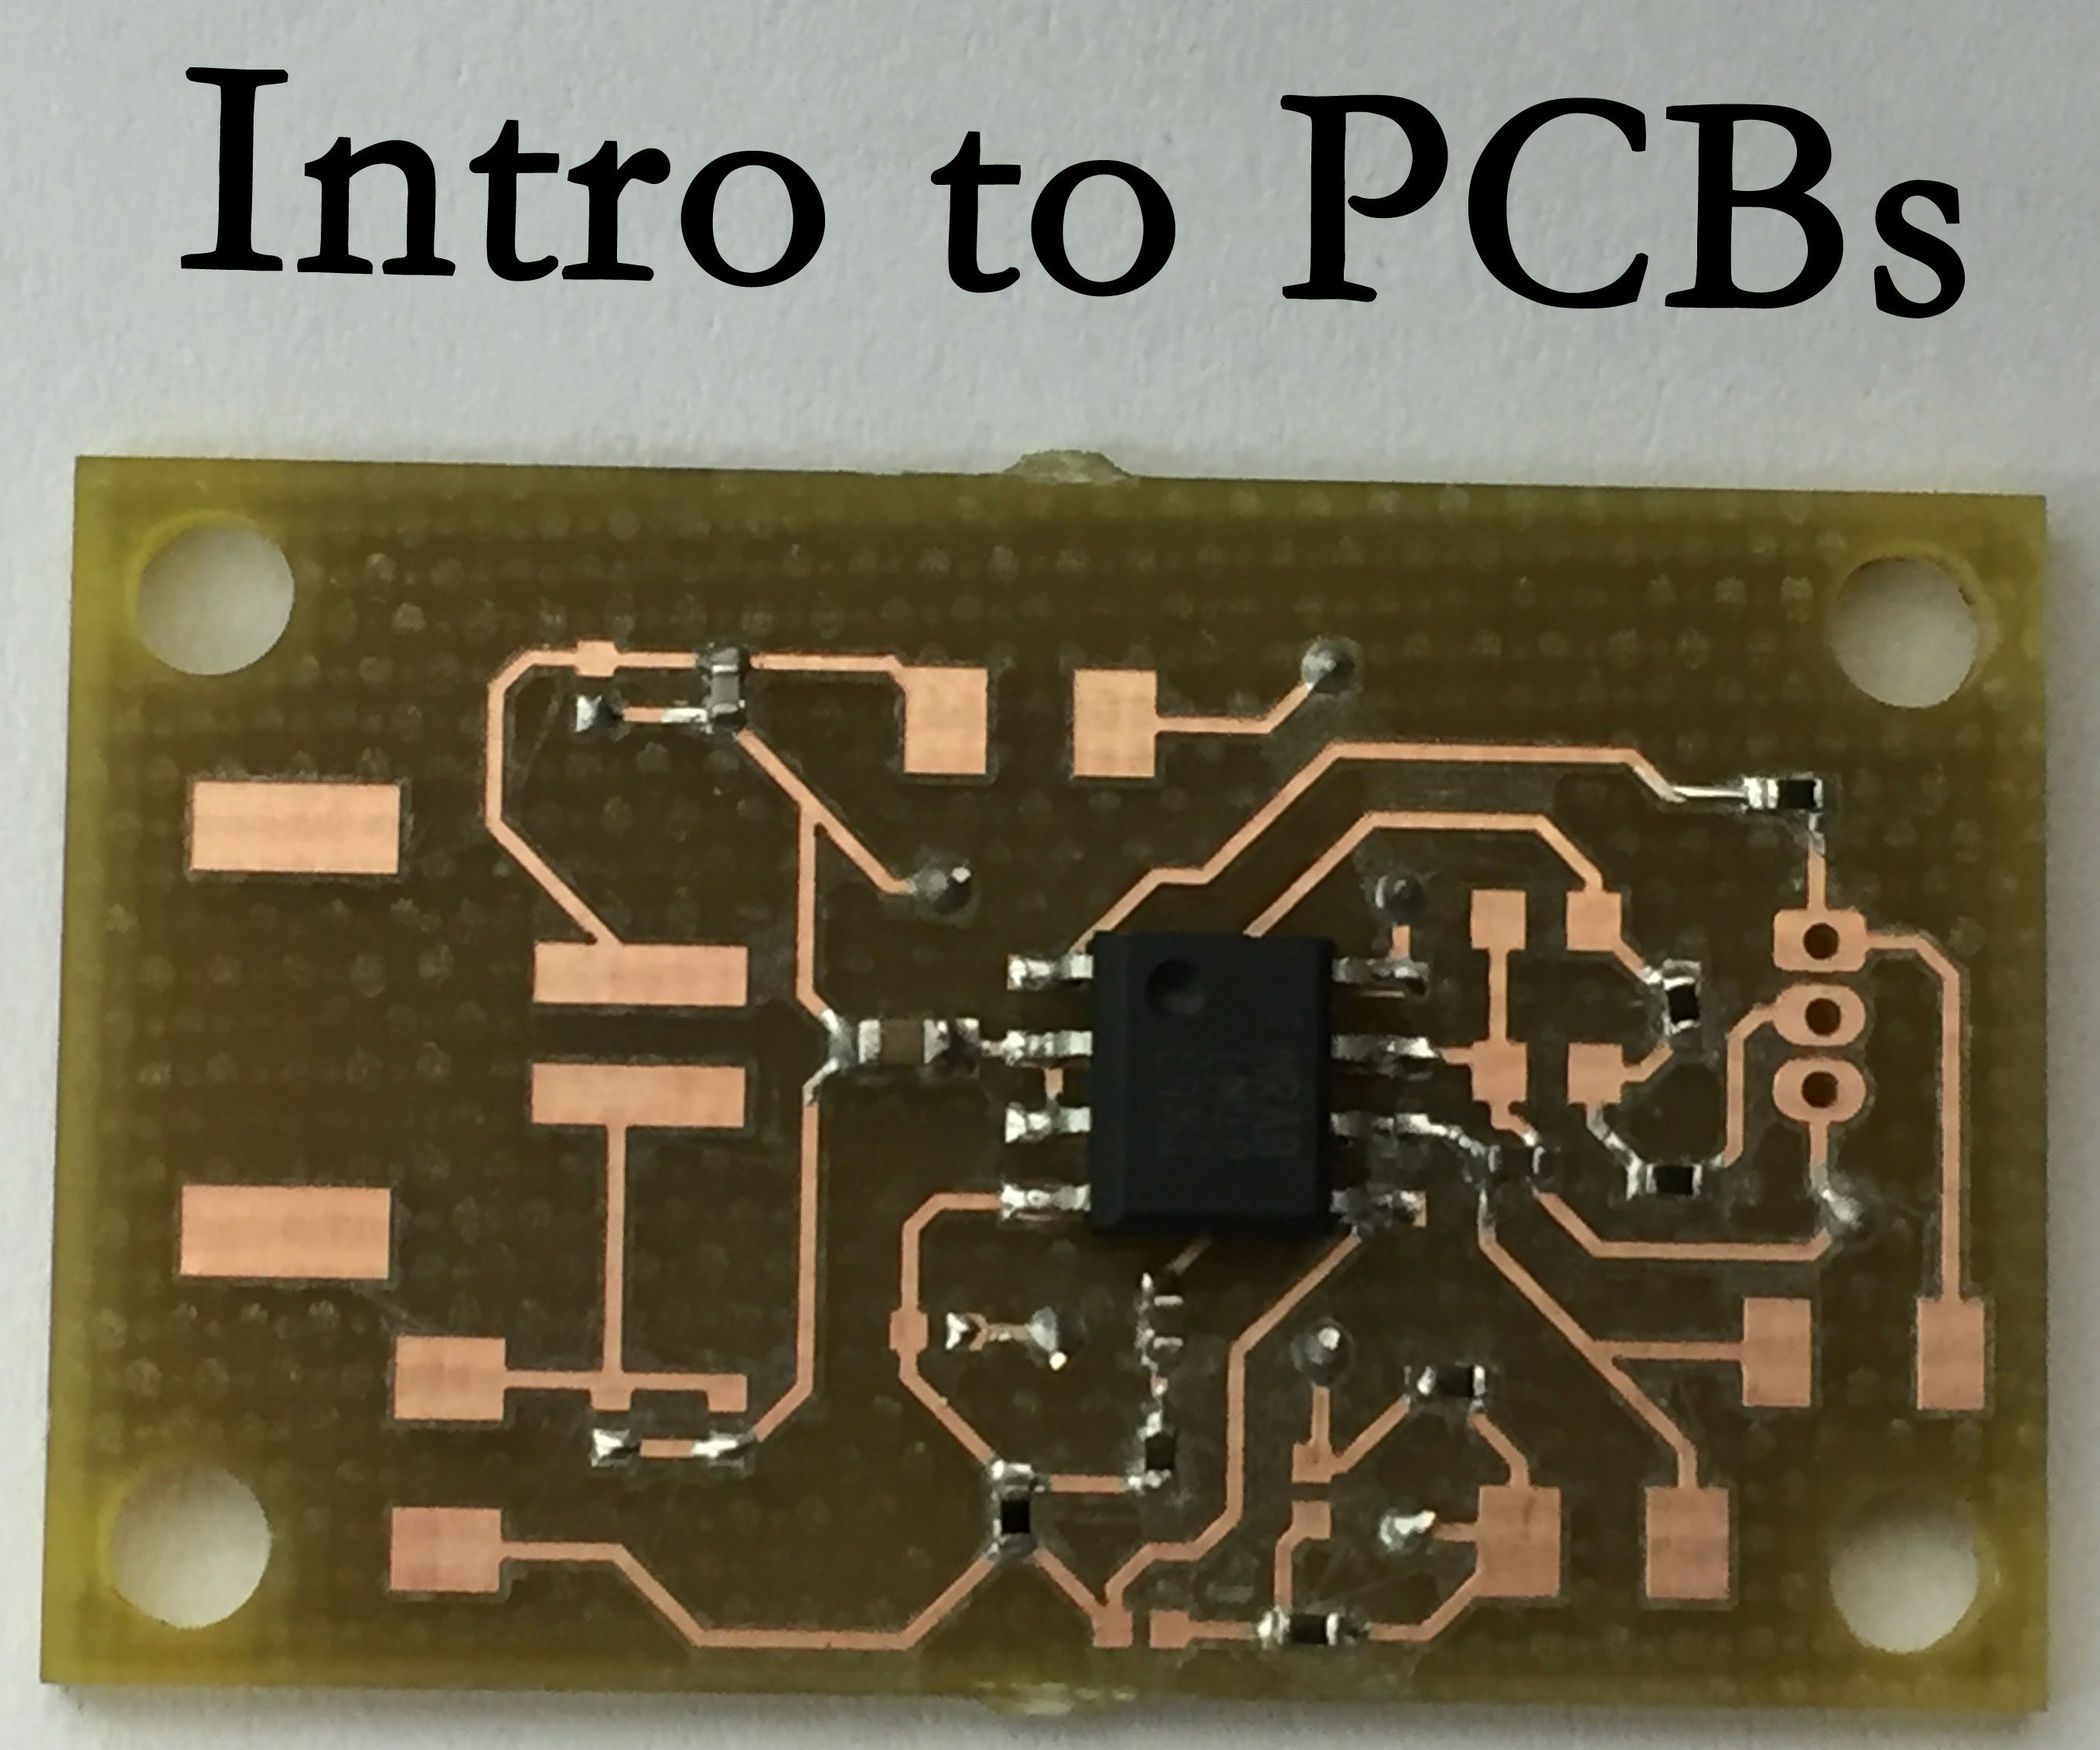 Intro To Printed Circuit Boards Electronics Pinterest Circuits Learning About In This Instructable Ill Go Over What A Board Is Where They Are Used And The Basics Of How Make One Yourself So Sit Back Strap